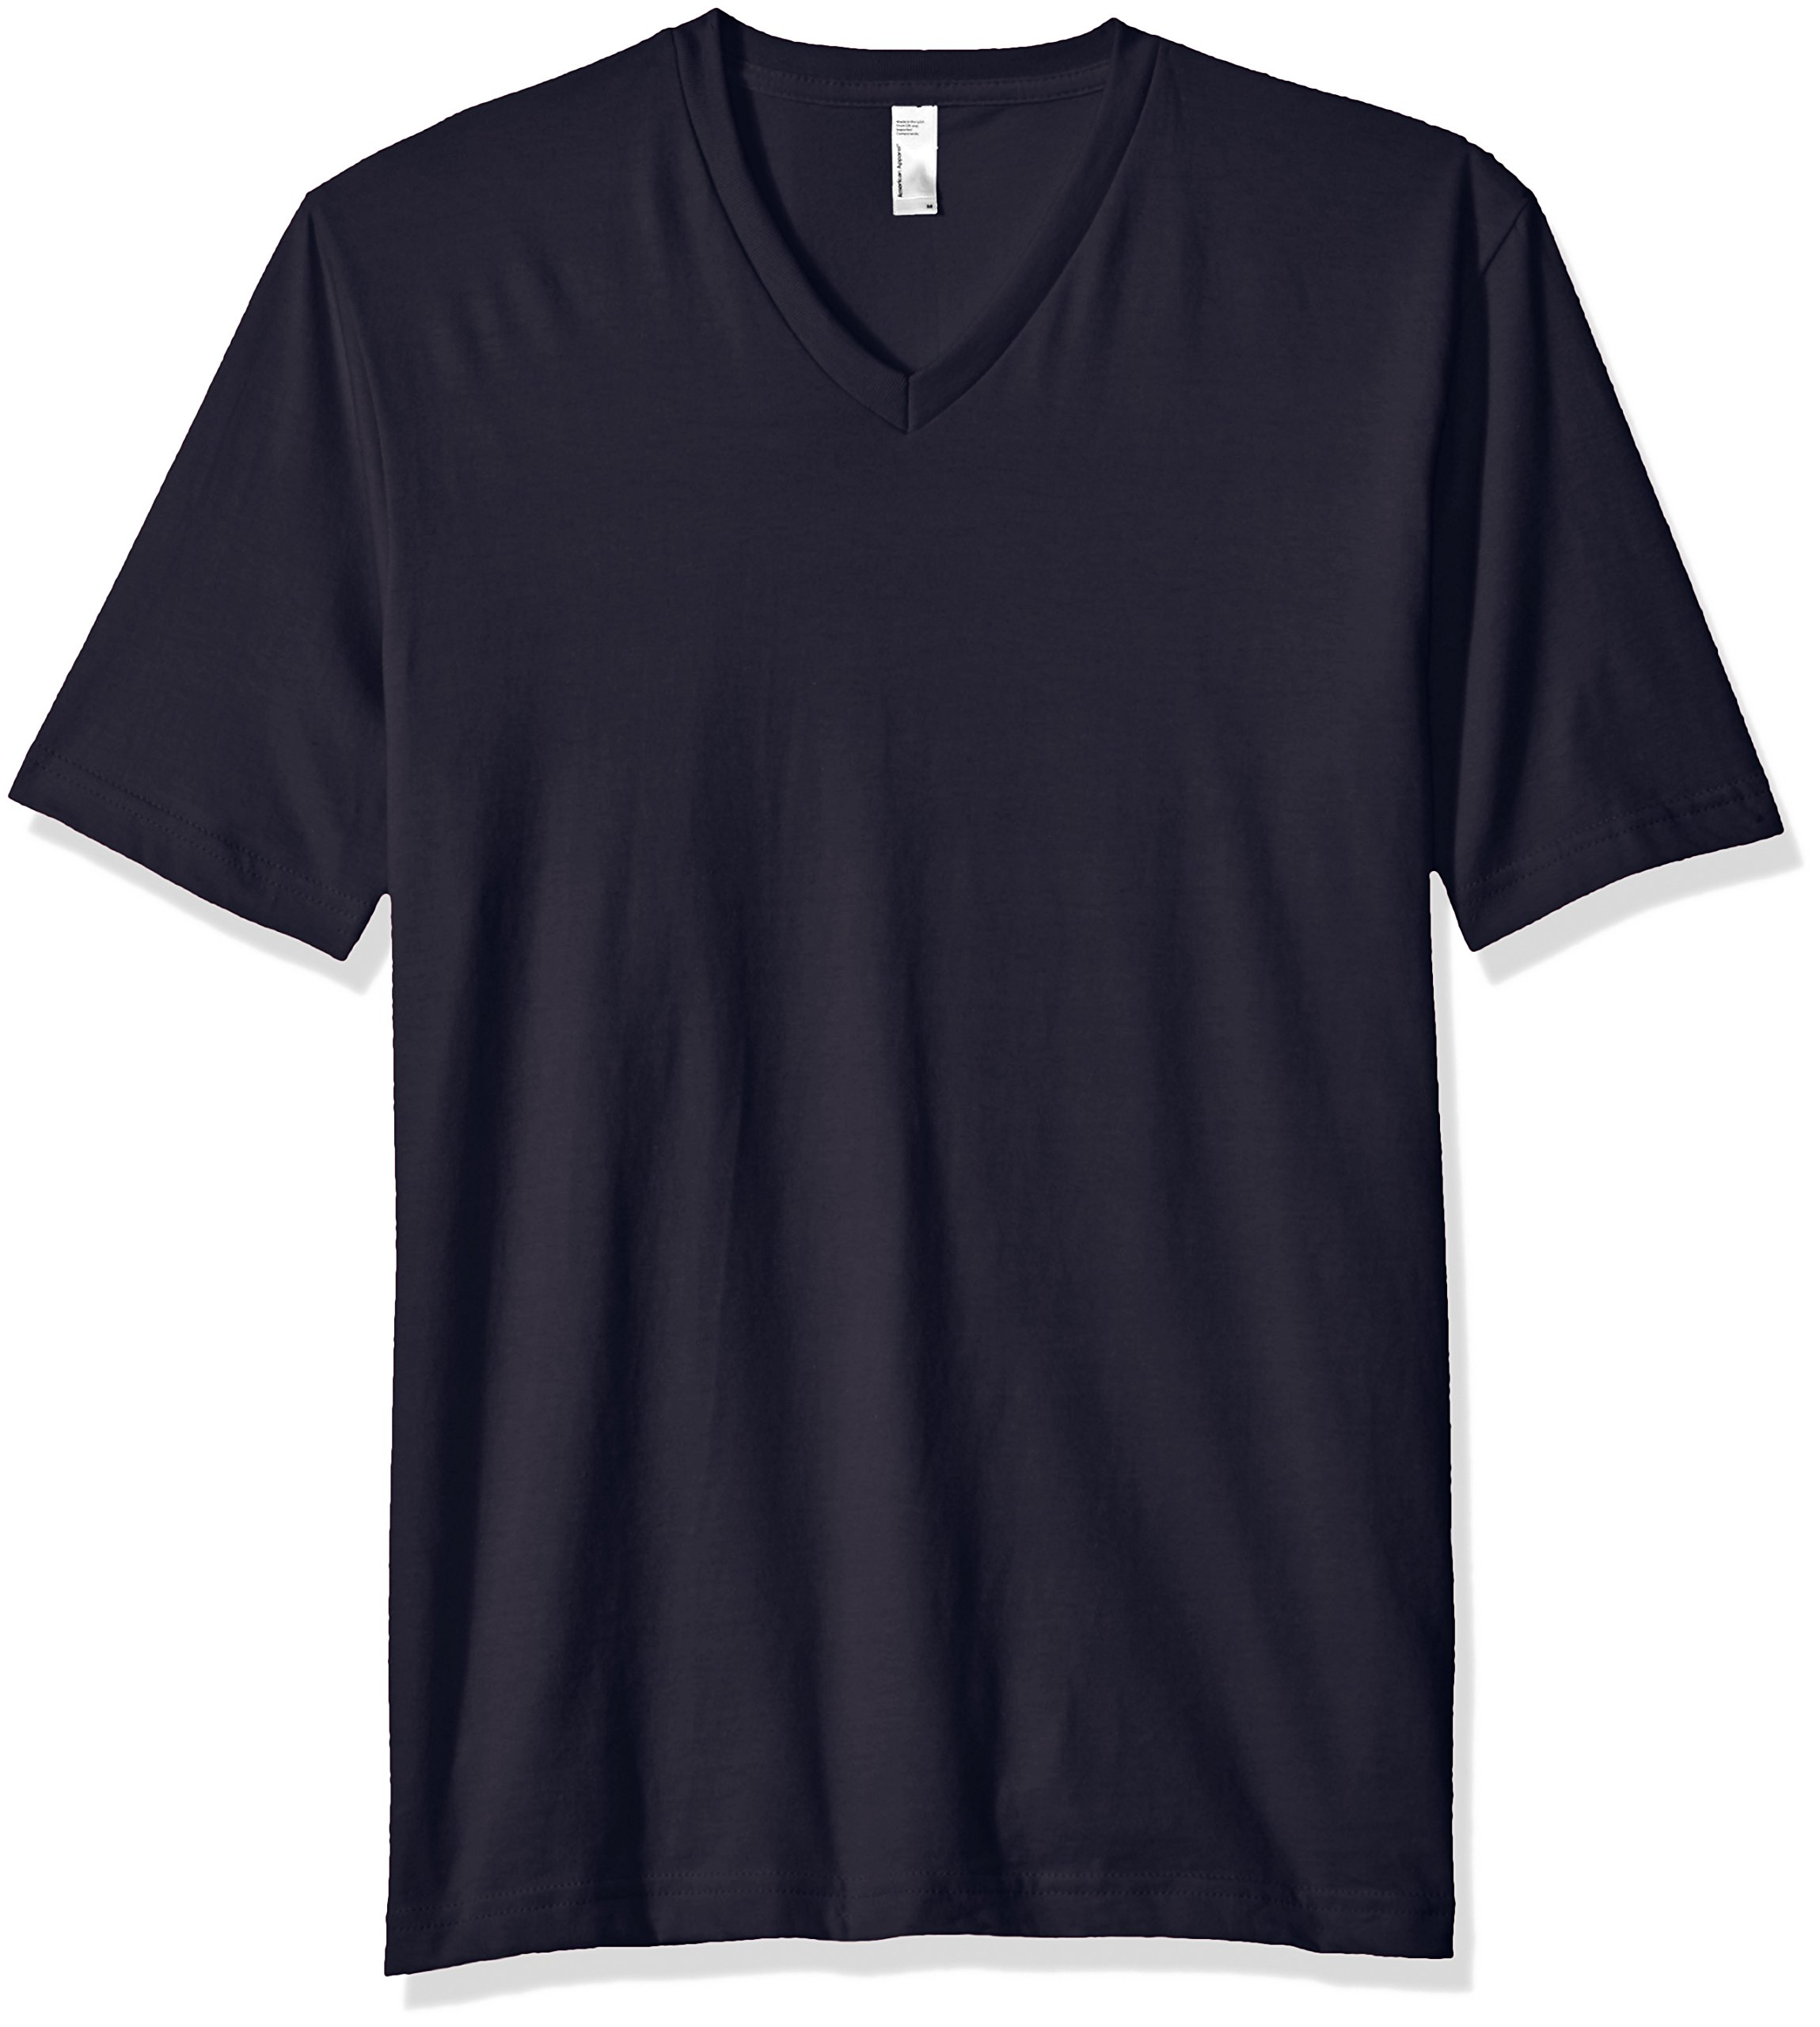 American Apparel Men's Fine Jersey Short Sleeve Classic V-Neck T-Shirt, Navy, X-Large